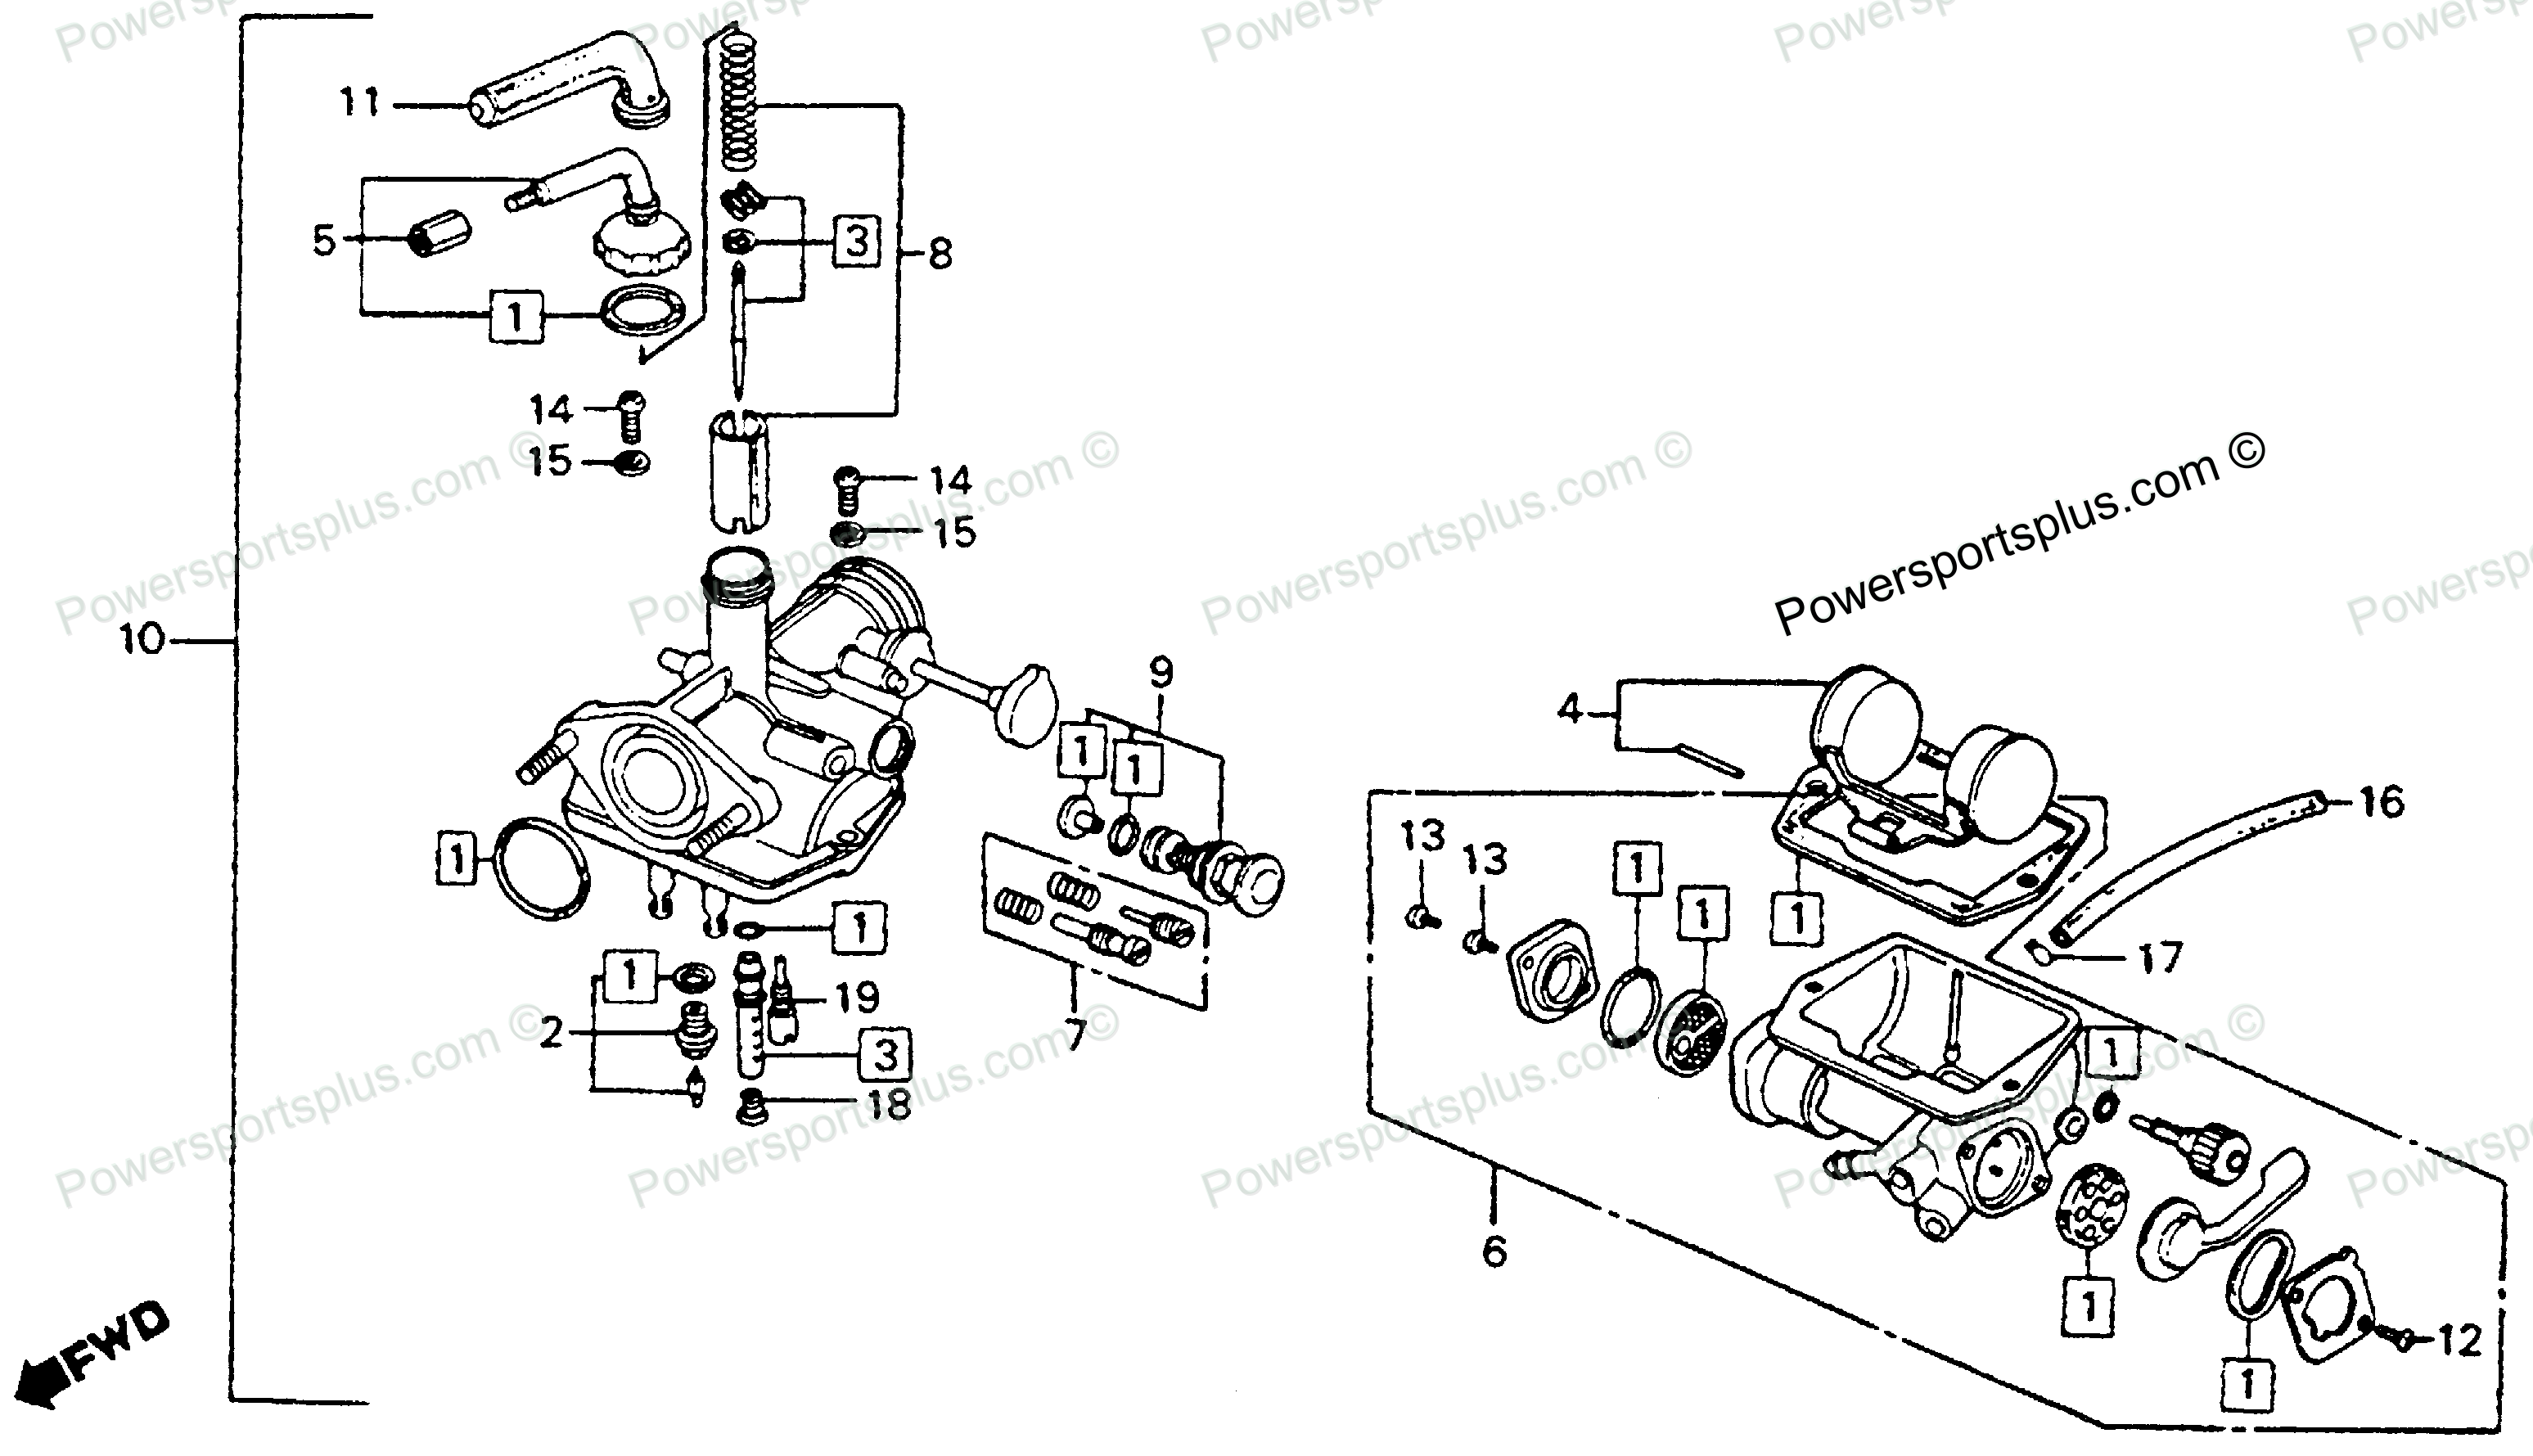 1980 honda ct 110 wiring diagram